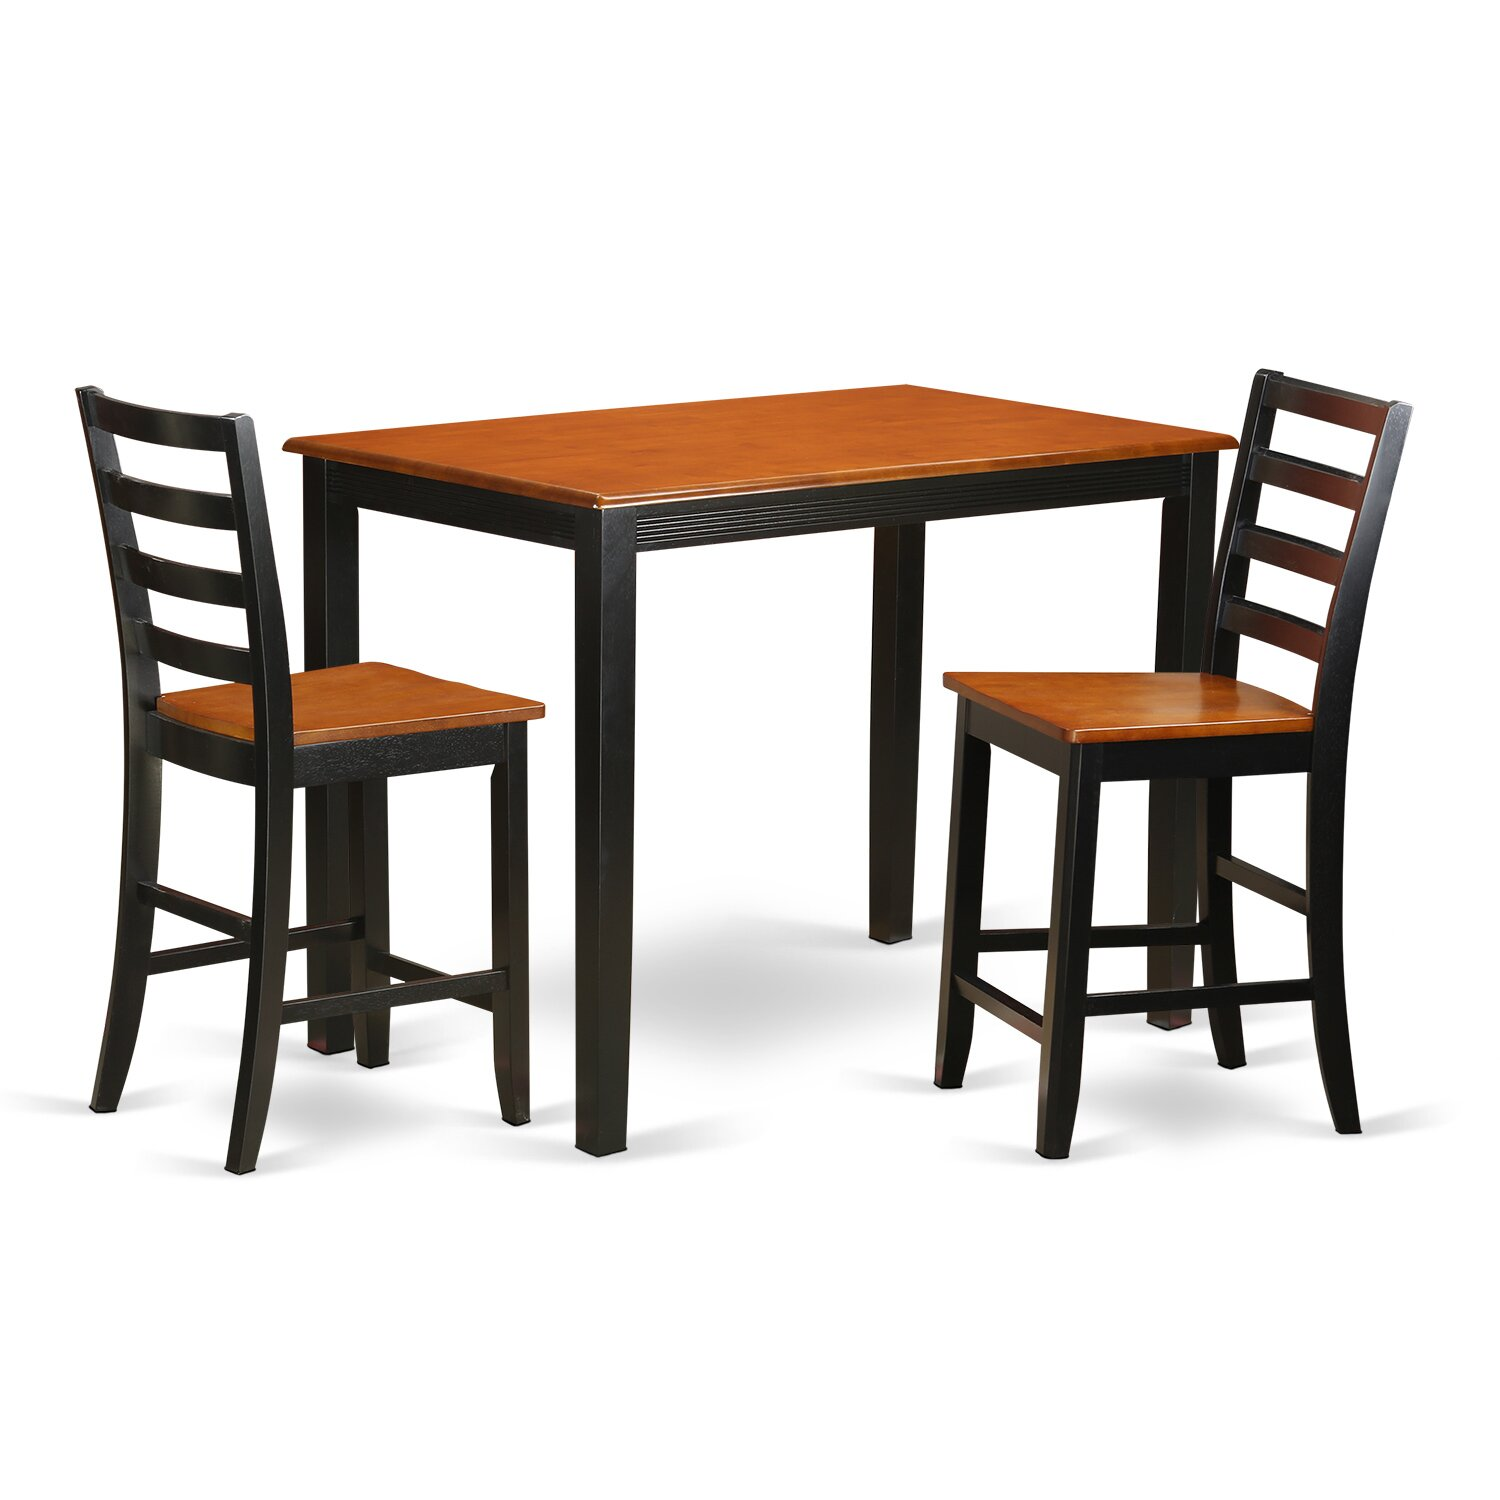 Wooden importers yarmouth 3 piece counter height pub table for Table and bench set